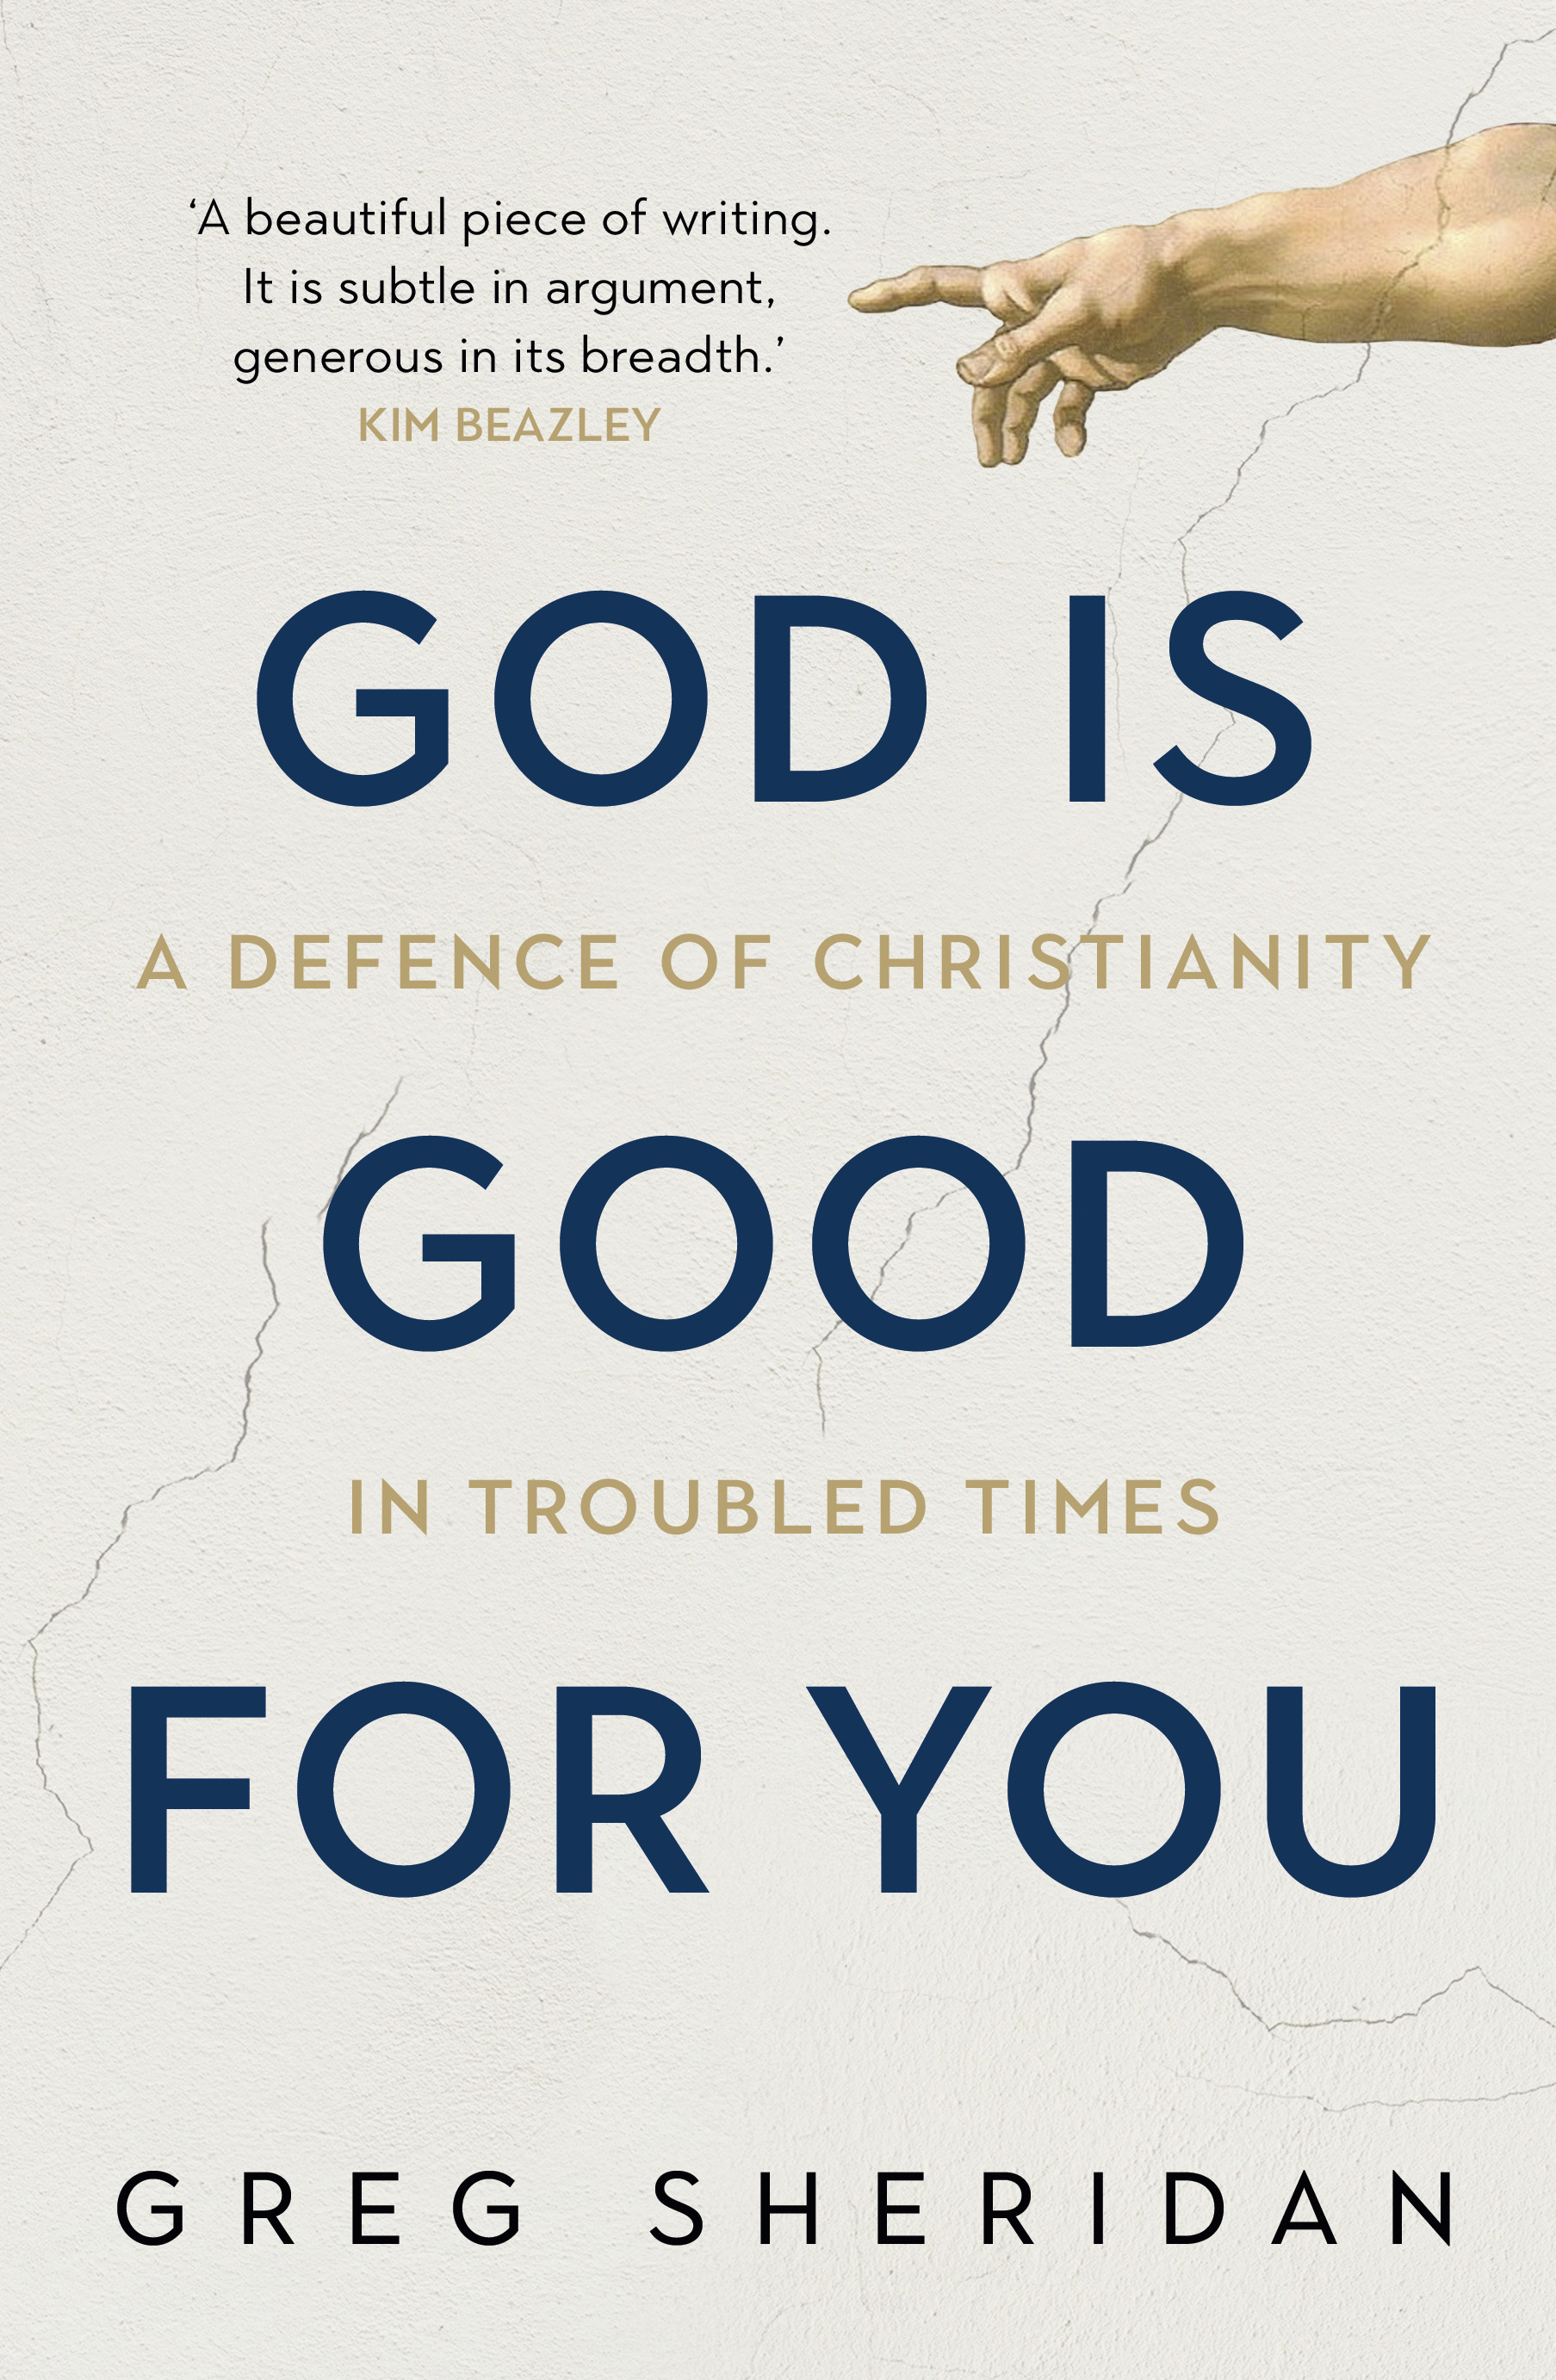 God is Good For You by Greg Sheridan, ISBN: 9781760632601